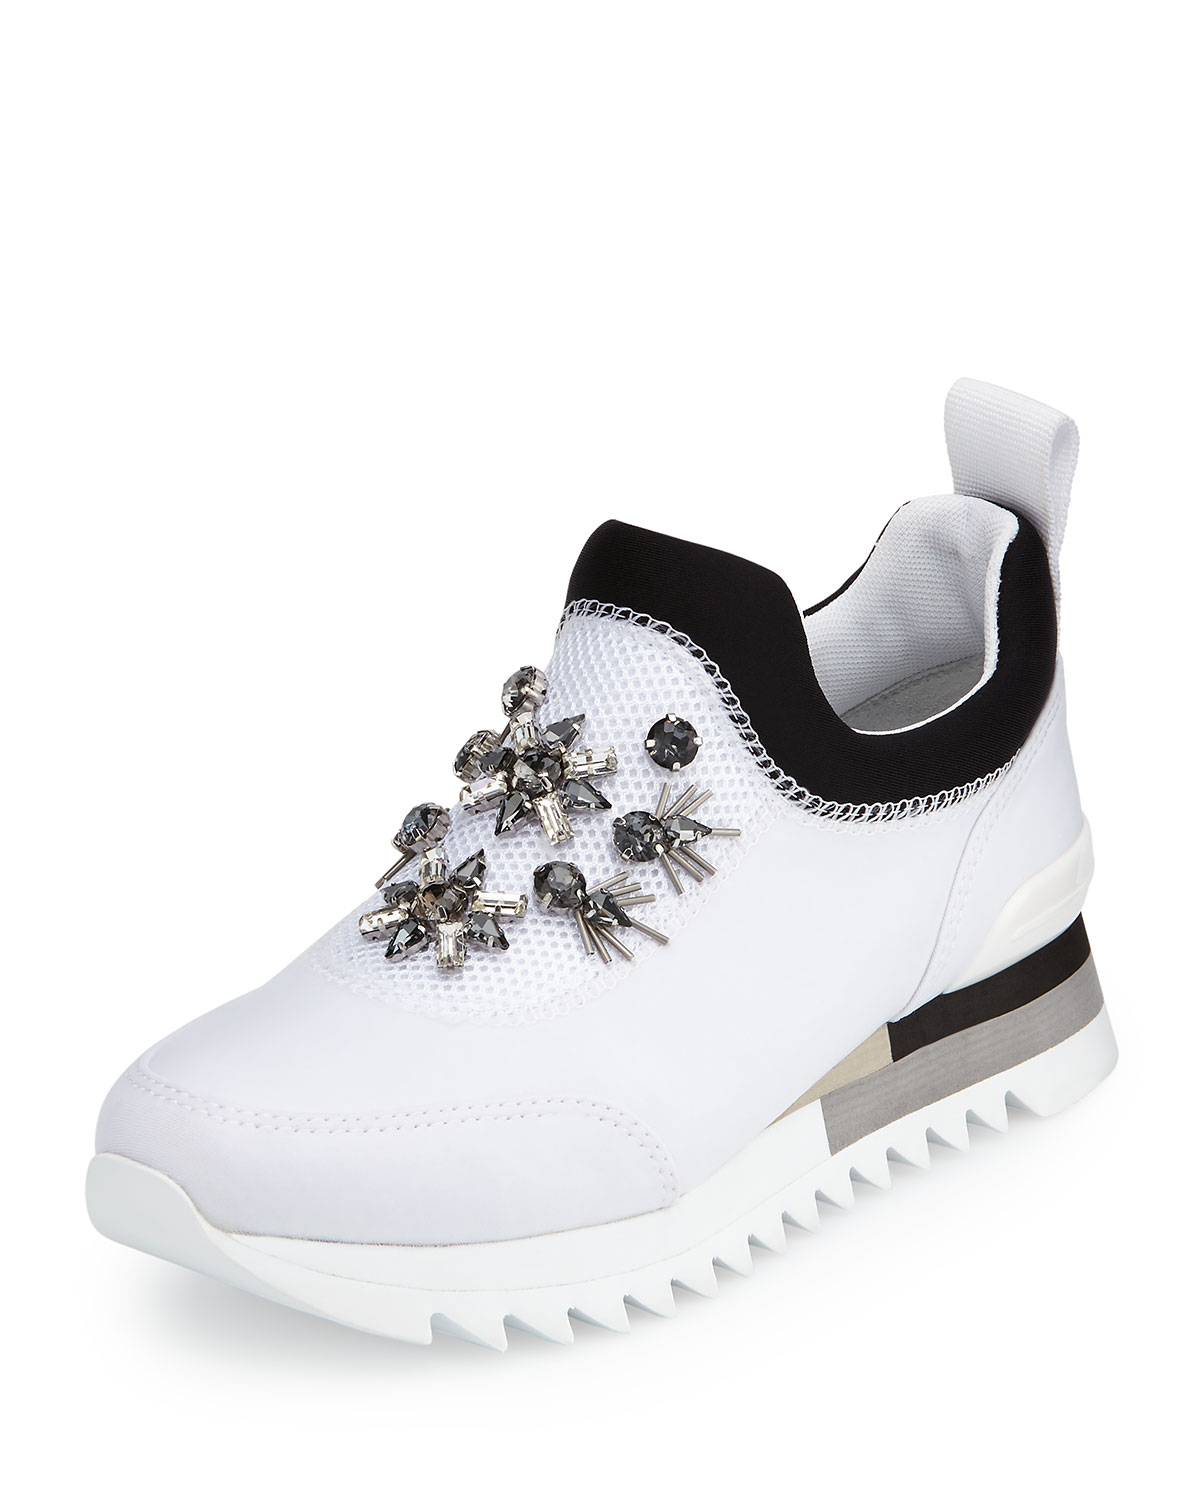 a4f335e58 Tory Burch Rosas Embellished Runner Sneaker